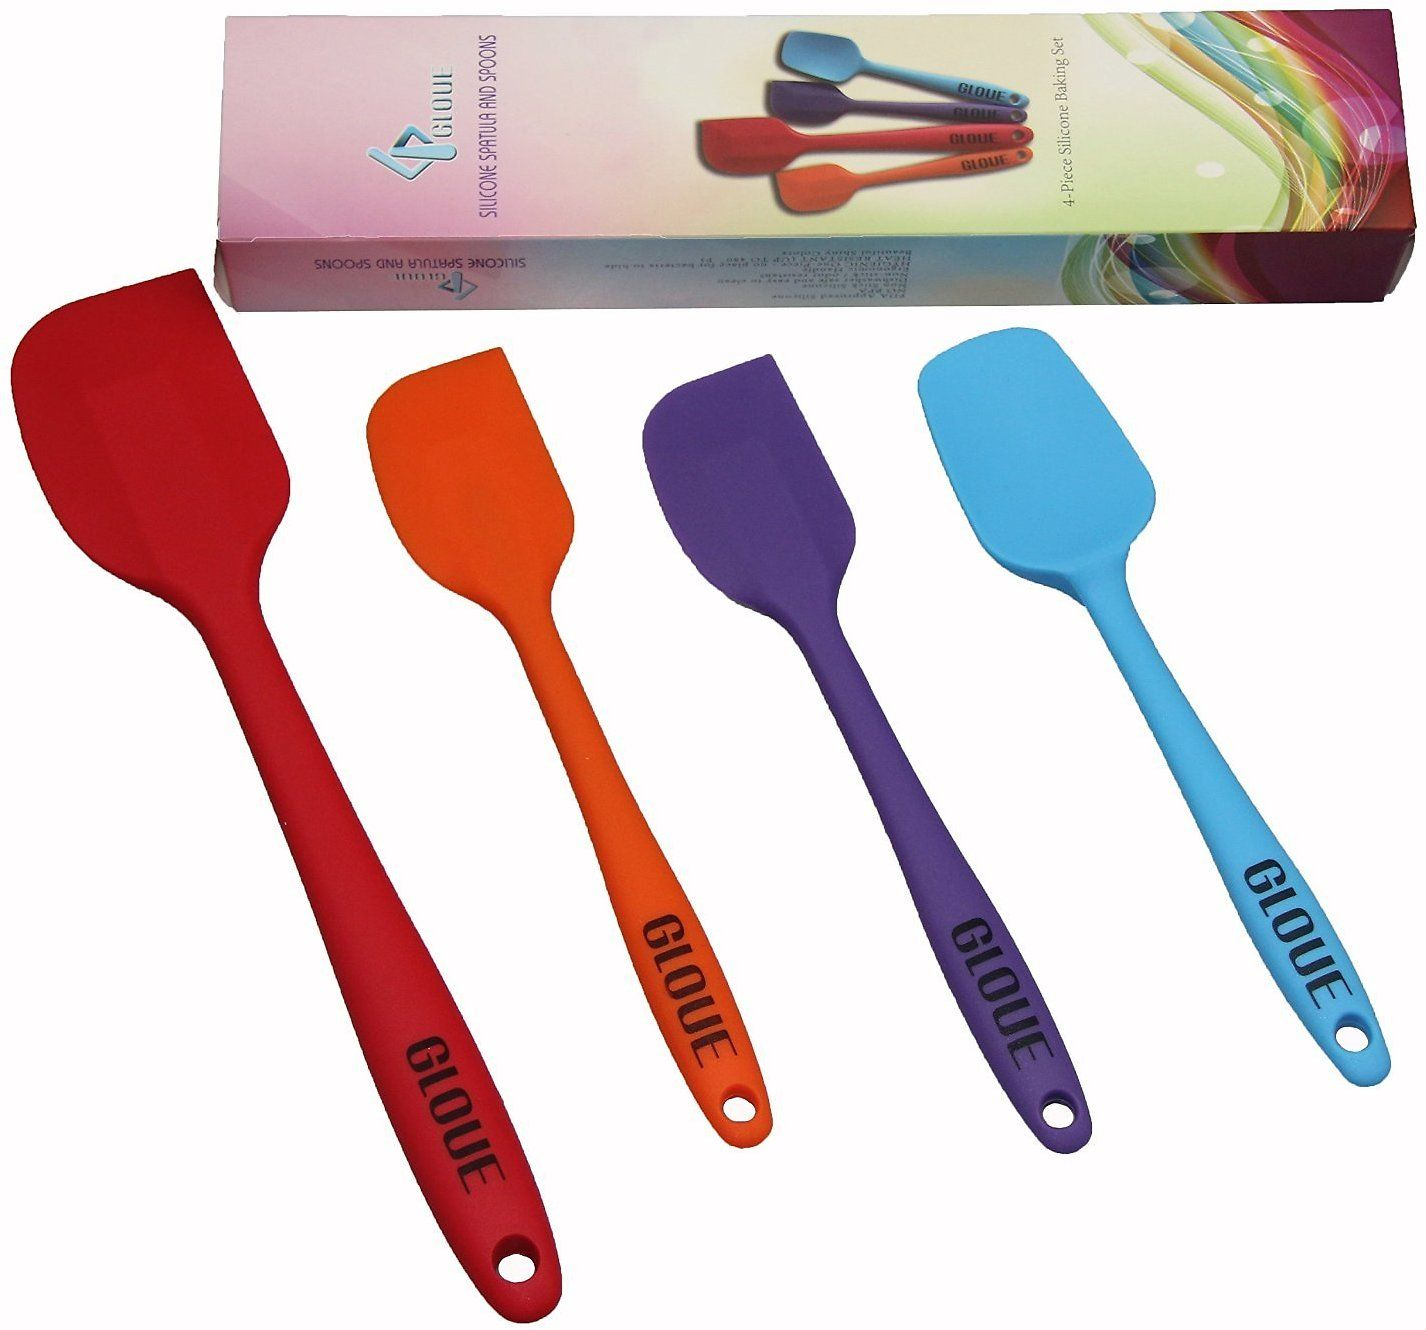 Gloue Silicone Spatula Set Heat Resistant Baking Spoon Spatulas Ergonomic Easy To Clean Seamless One Piece Design Nonstick Dishwasher Safe Solid